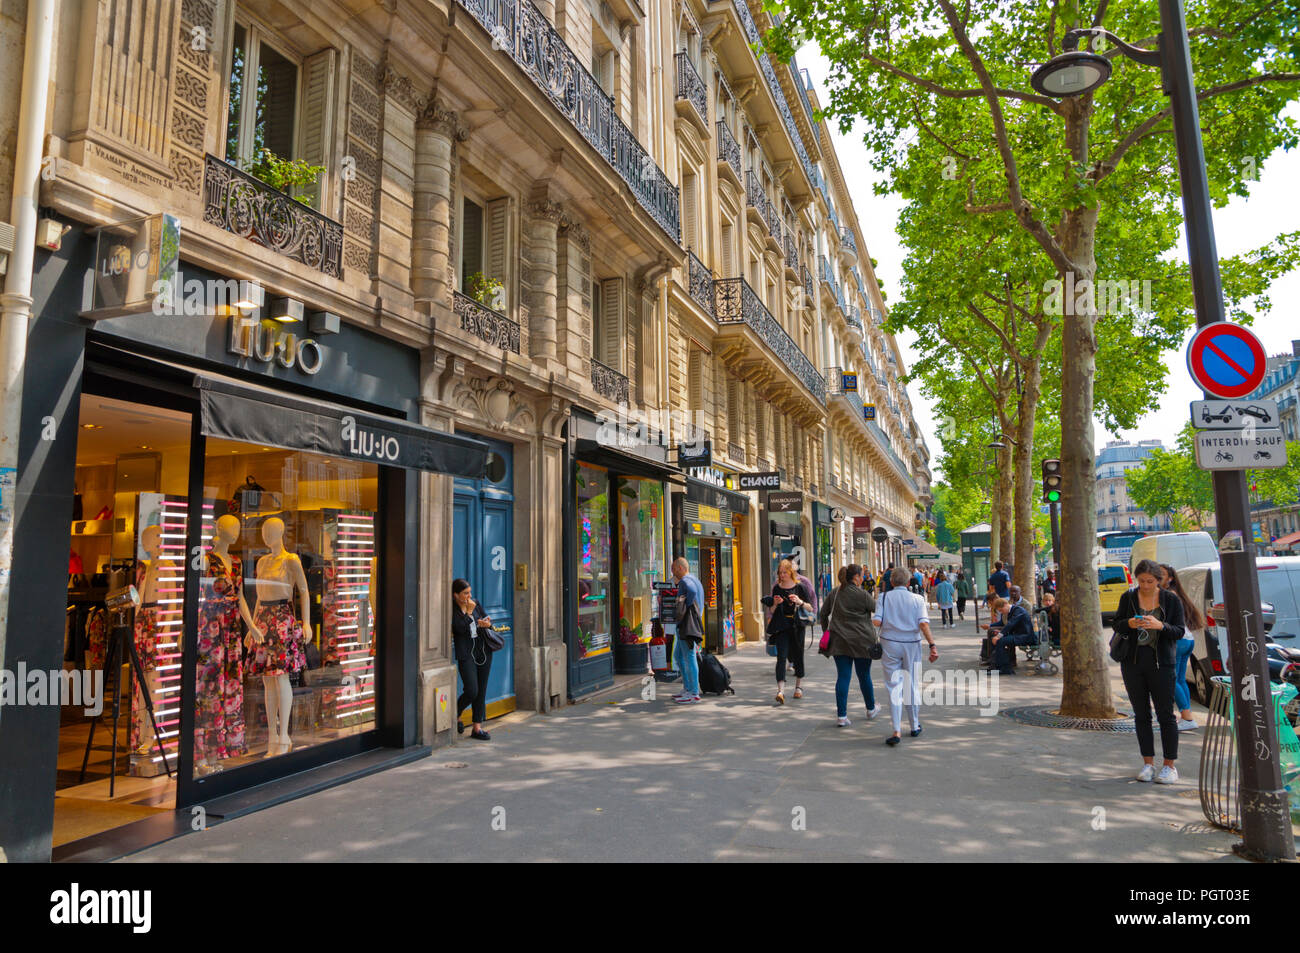 Boulevard Saint Germain, St Germain des Pres, Left Bank, Paris, France - Stock Image